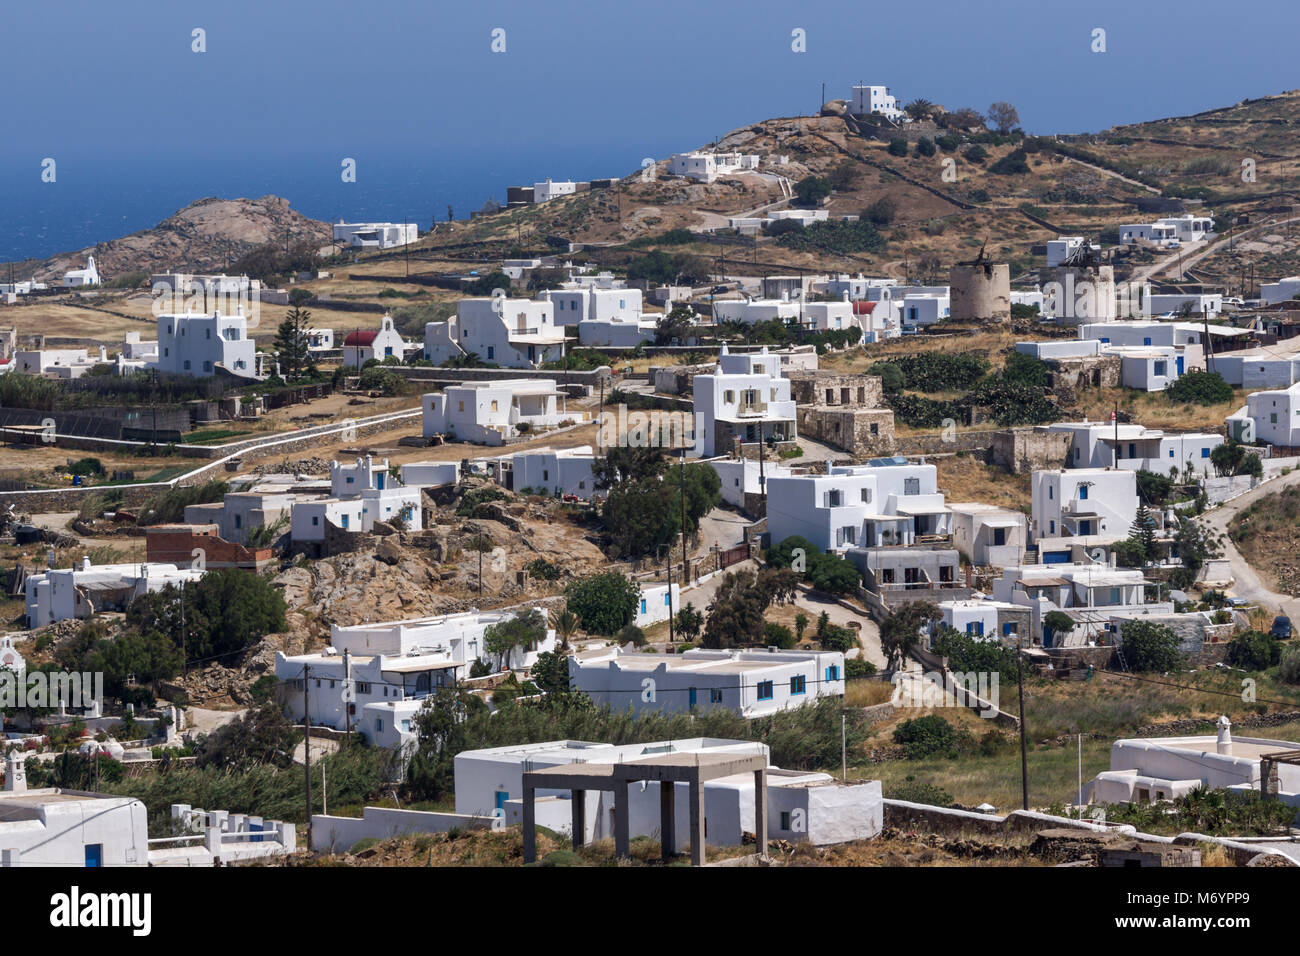 Panorama of Town of Ano Mera, island of Mykonos, Cyclades, Greece Stock Photo